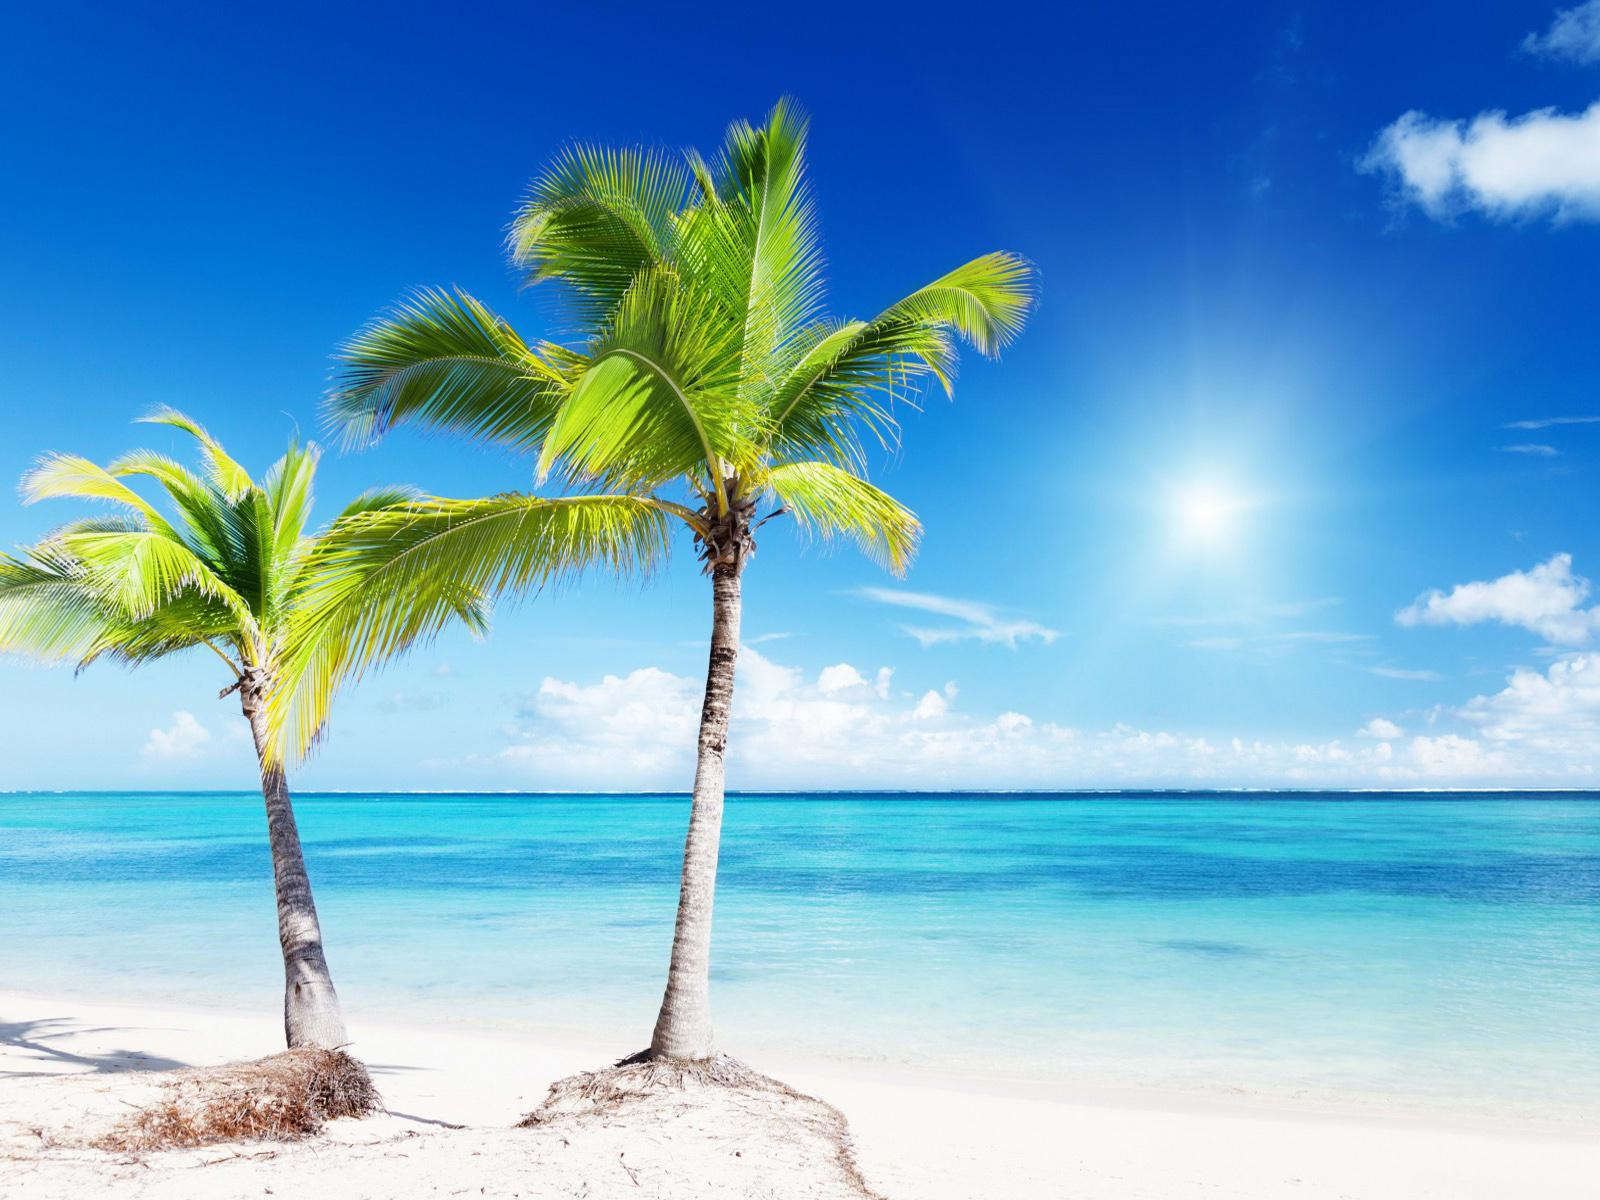 Backgrounds for Gt Tropical Beaches with Palm Trees Wallpapers 1600x1200